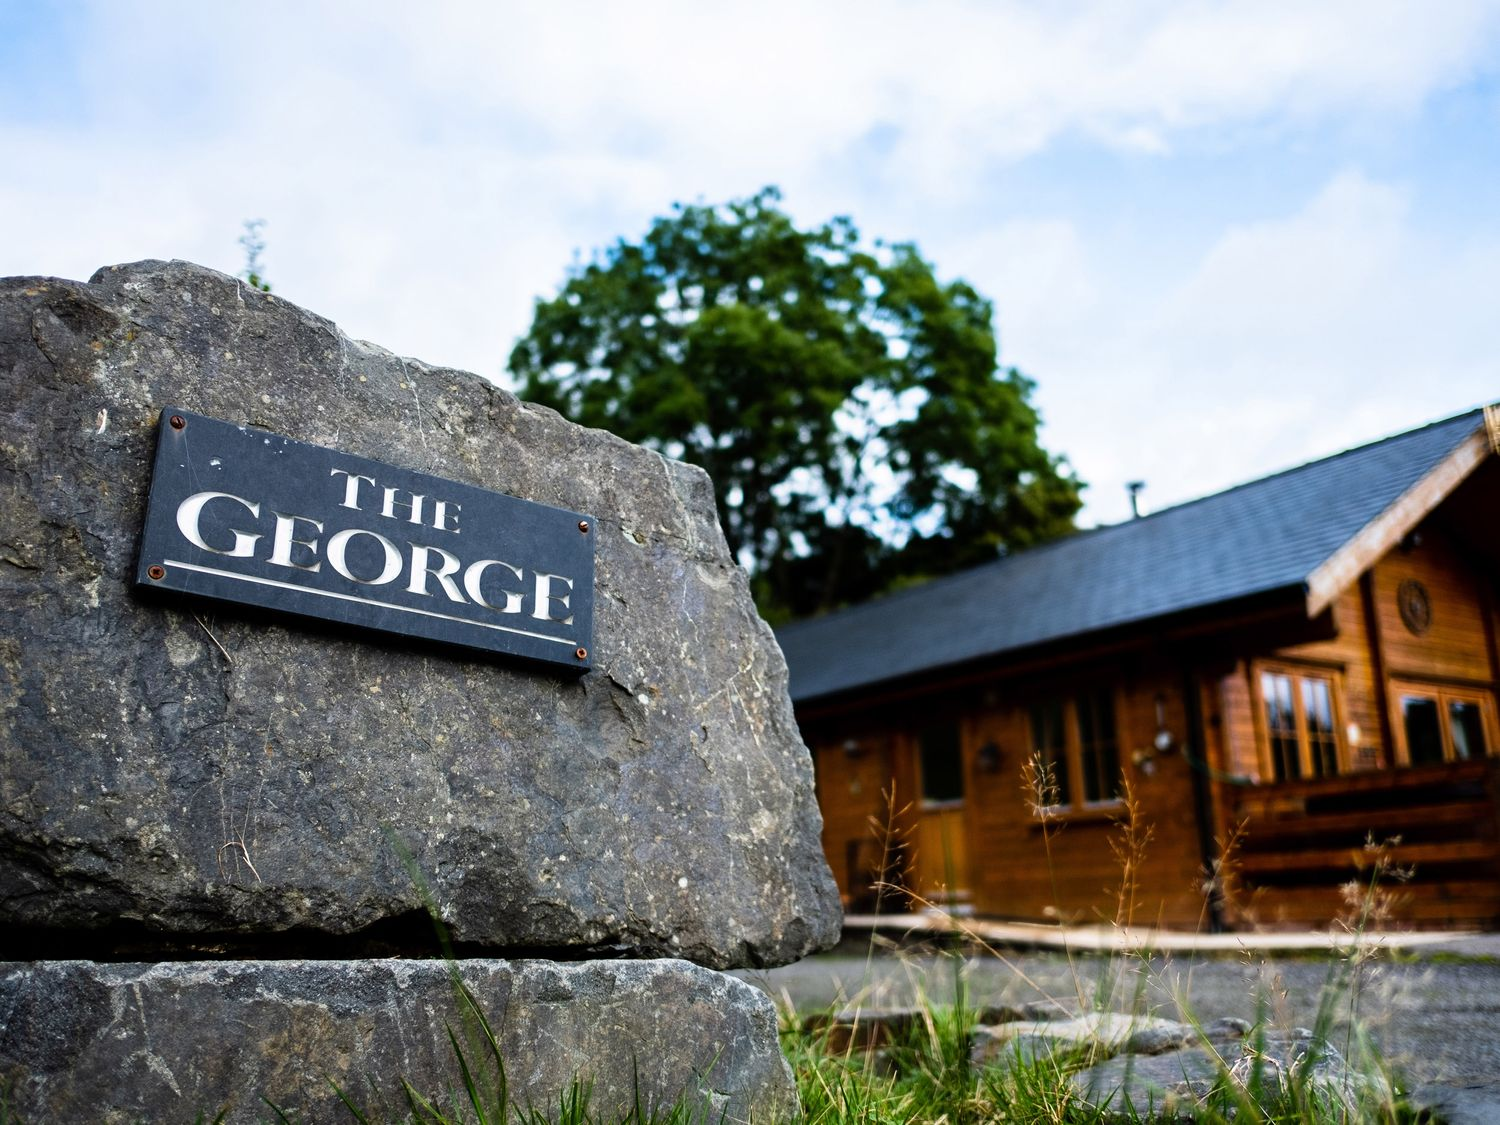 The George, Wales